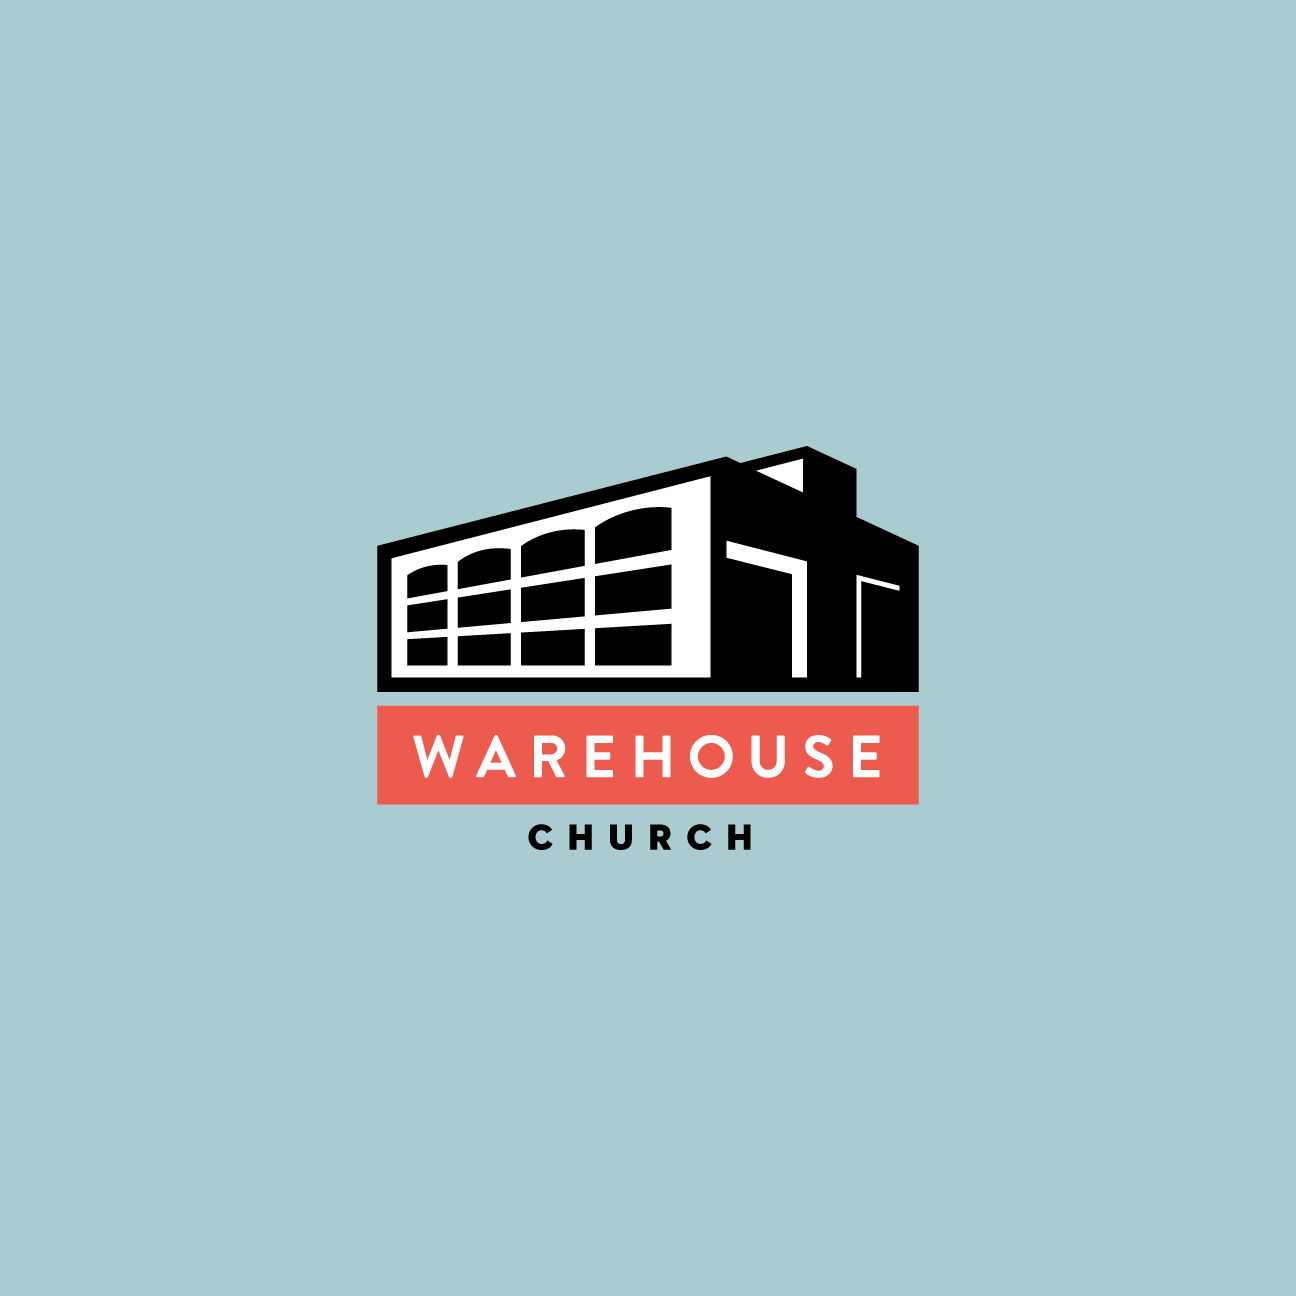 Warehouse Church Logo